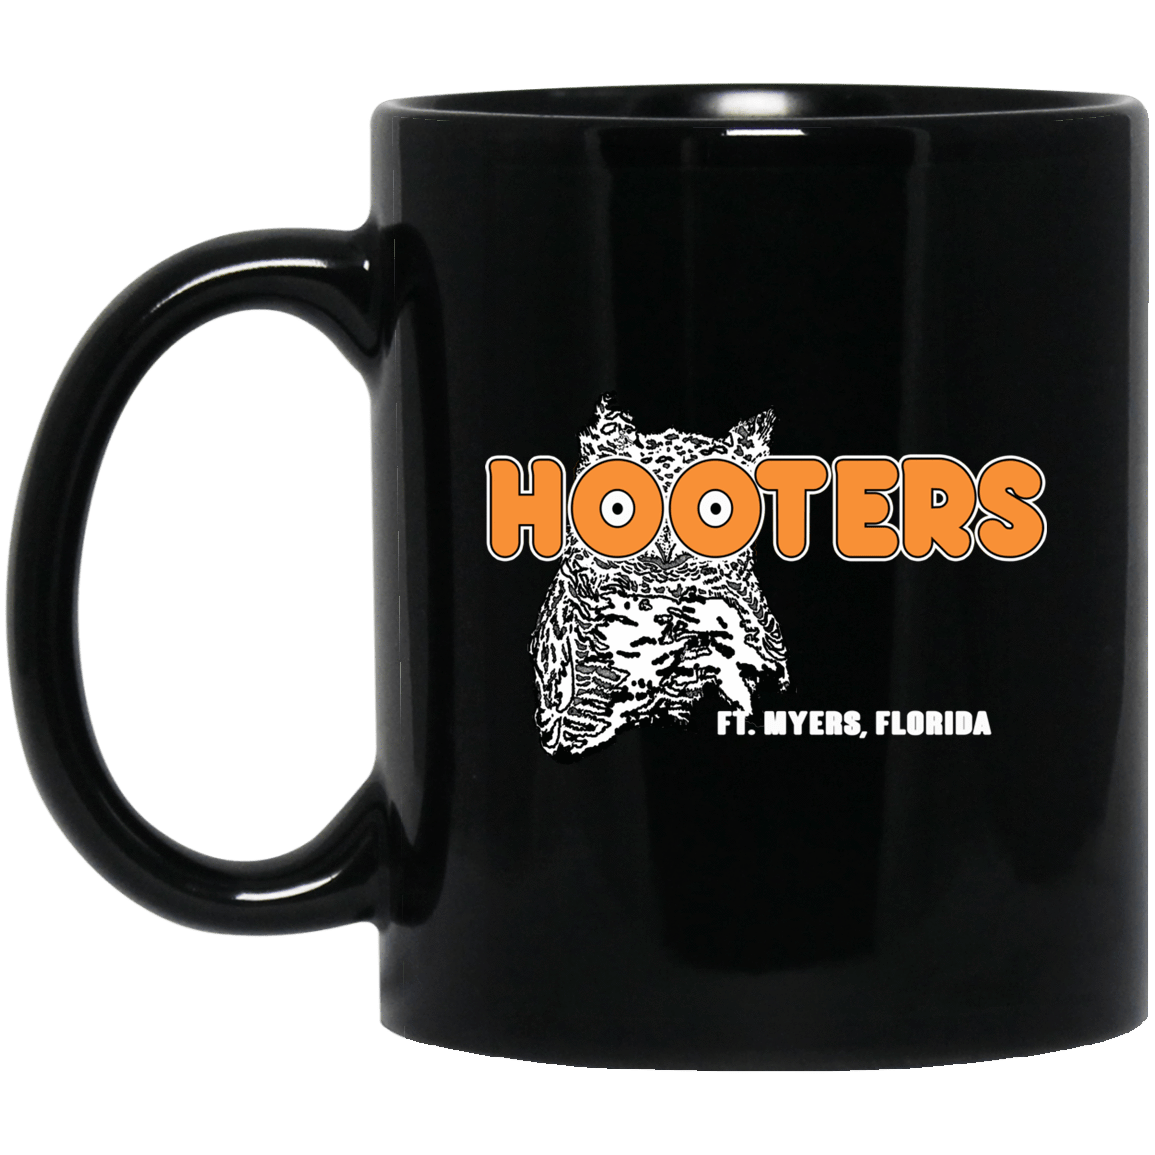 Hooters Fort Myers, Florida Mug 1065-10181-73181051-49307 - Tee Ript